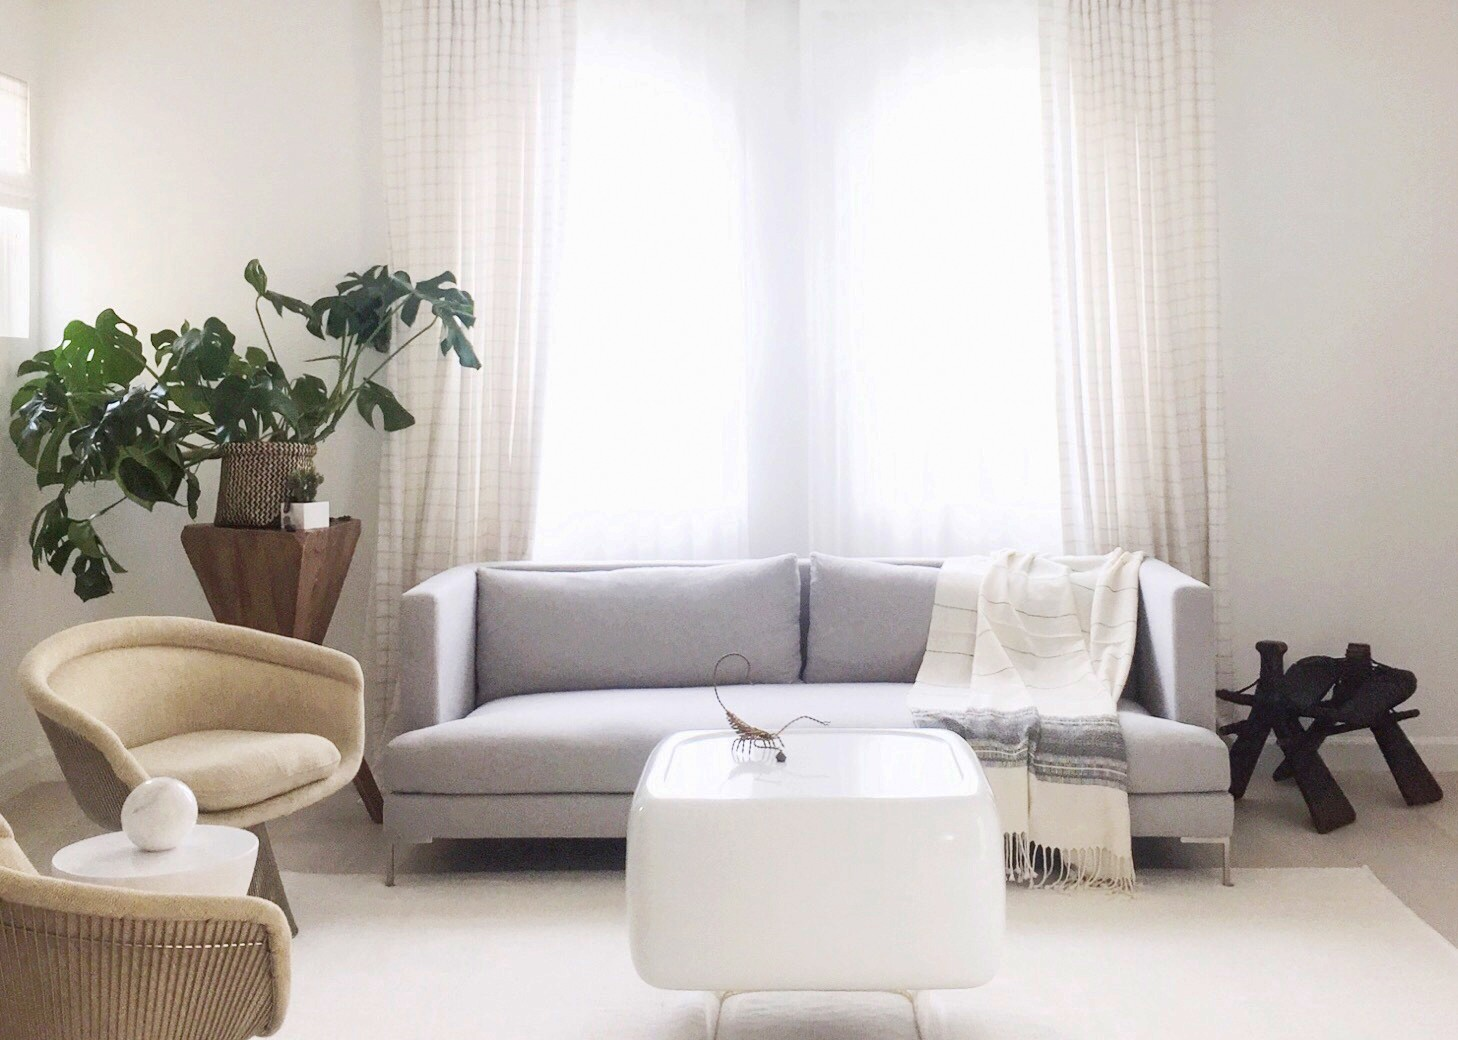 So today well take a look at what steps to take to ensure that you hire the right interior designer for your job